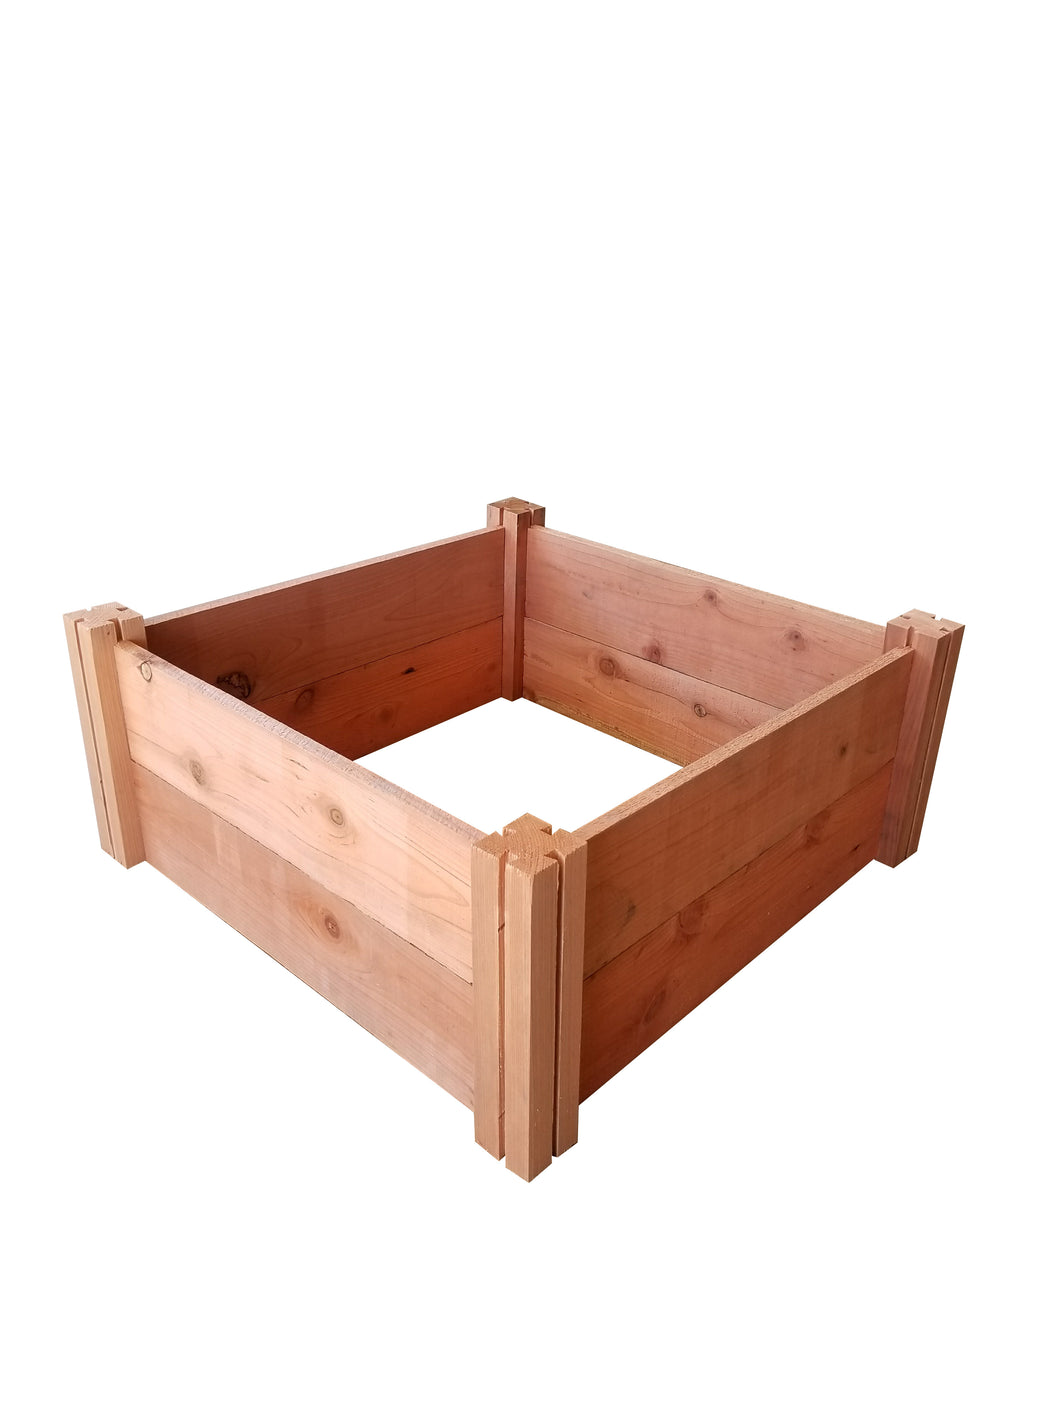 GroGardens 2' x 2' Redwood Raised Garden Bed - GroGardens